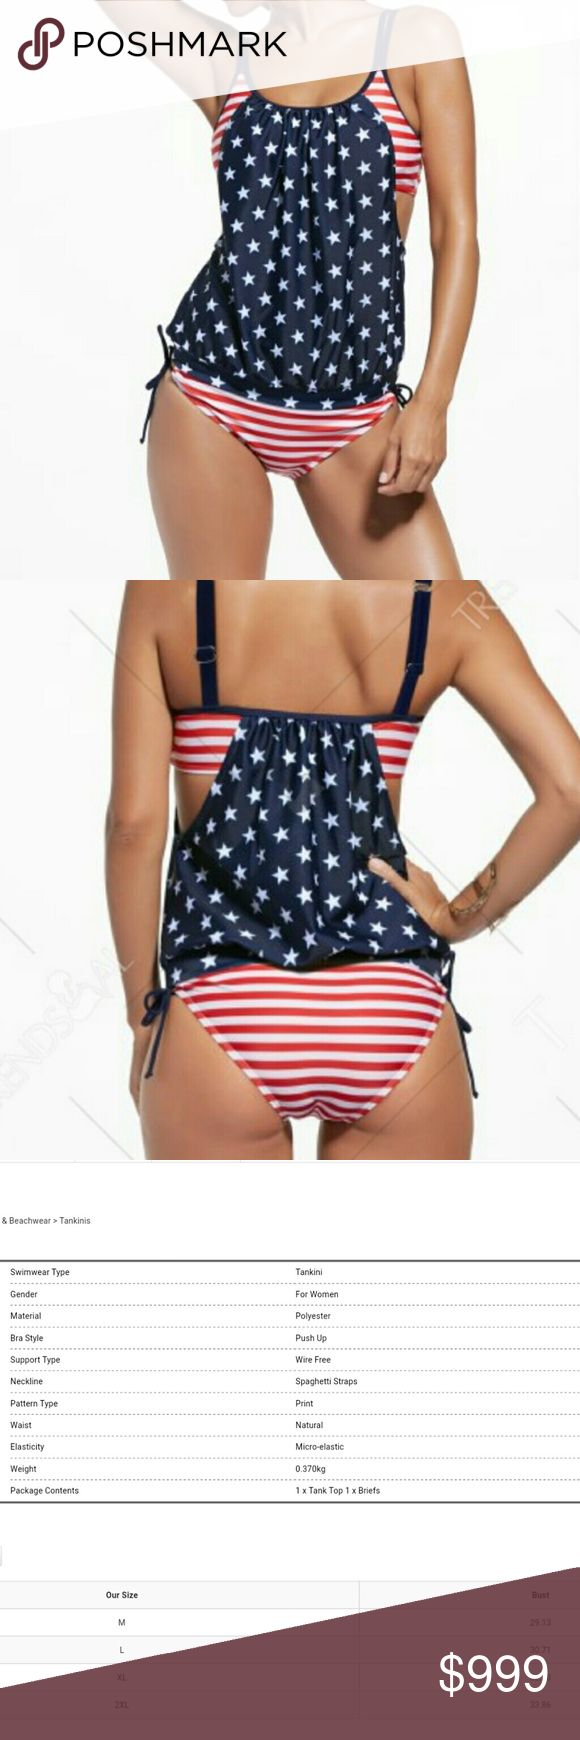 stars & stripes tankini Super cute Stars and Stripes two-piece tankini set. May run a tiny bit small, adjustable straps, stretchy. Brand new from wholesaler. 100% polyester and spandex mix. NO TRADES see size chart photo 08630 Swim